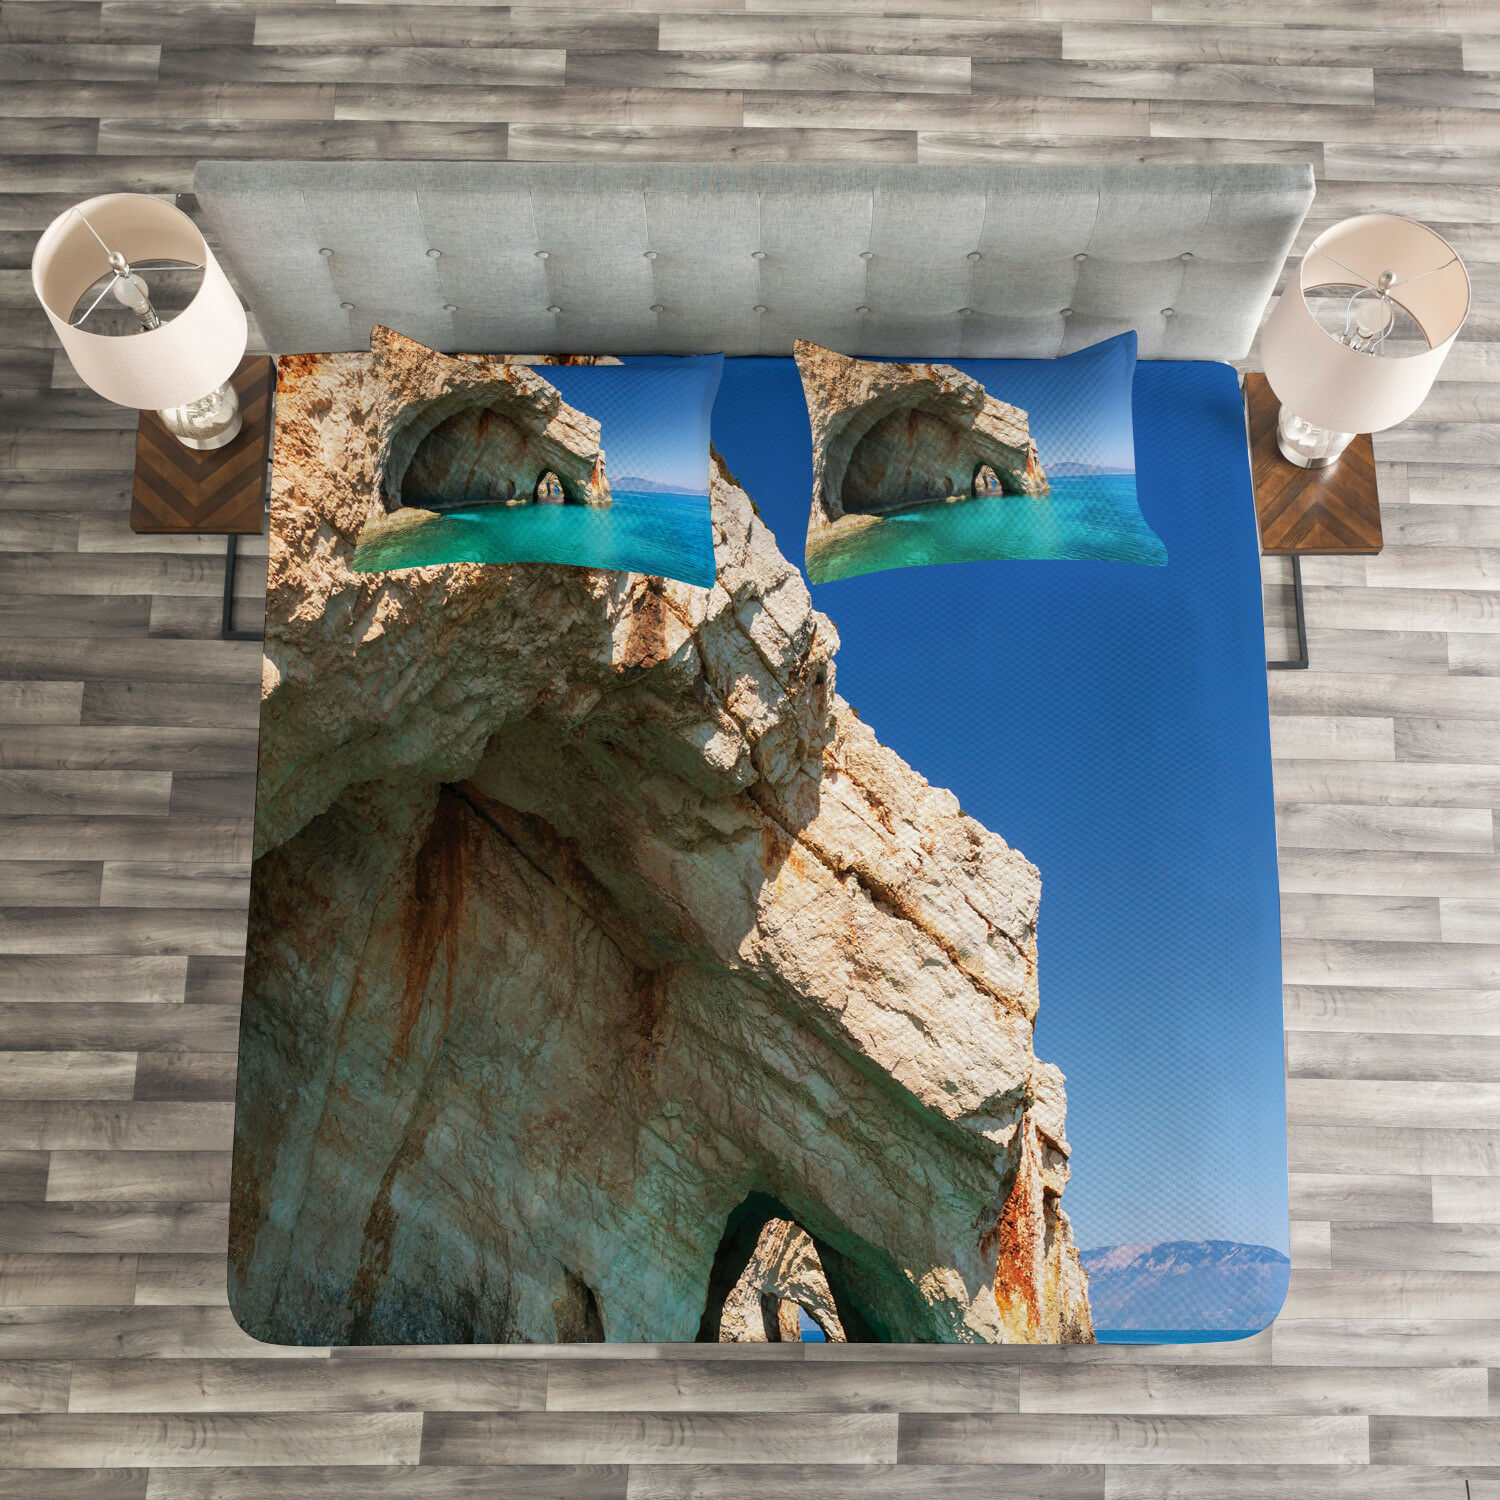 Marine Quilted Bedspread & Pillow Shams Set, Sea Cave on Zakynthos Print